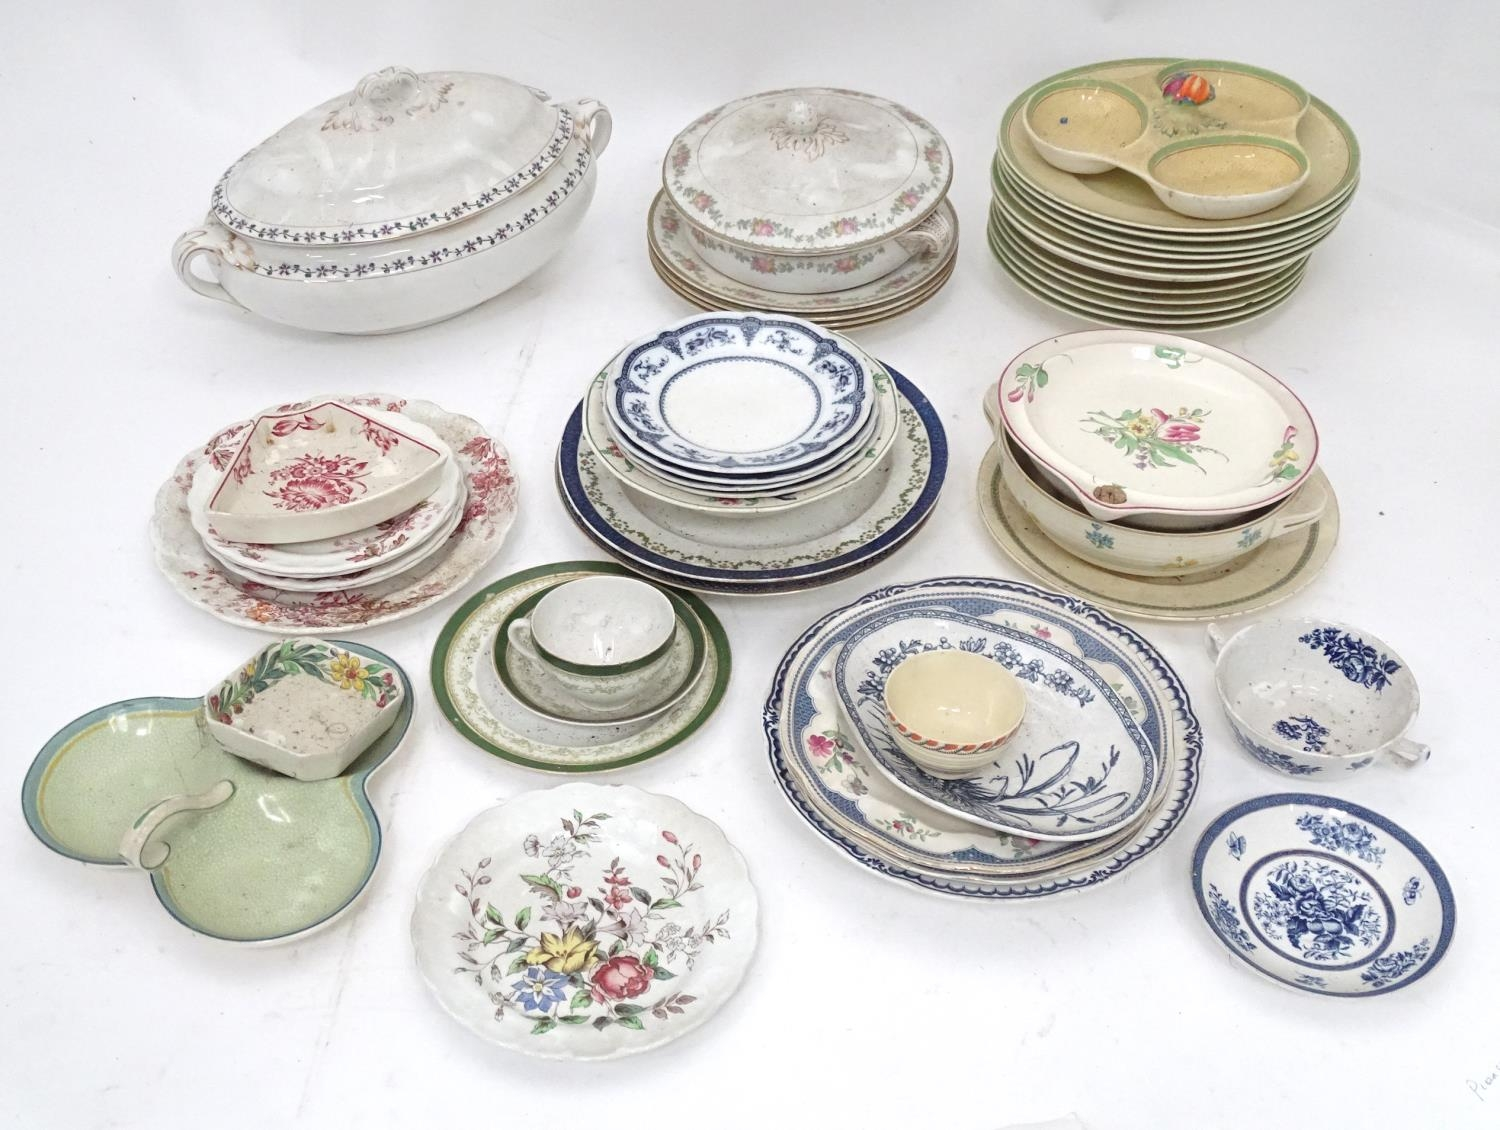 A quantity of assorted Booths china patterns to include Old Staffordshire, Flowerpiece,